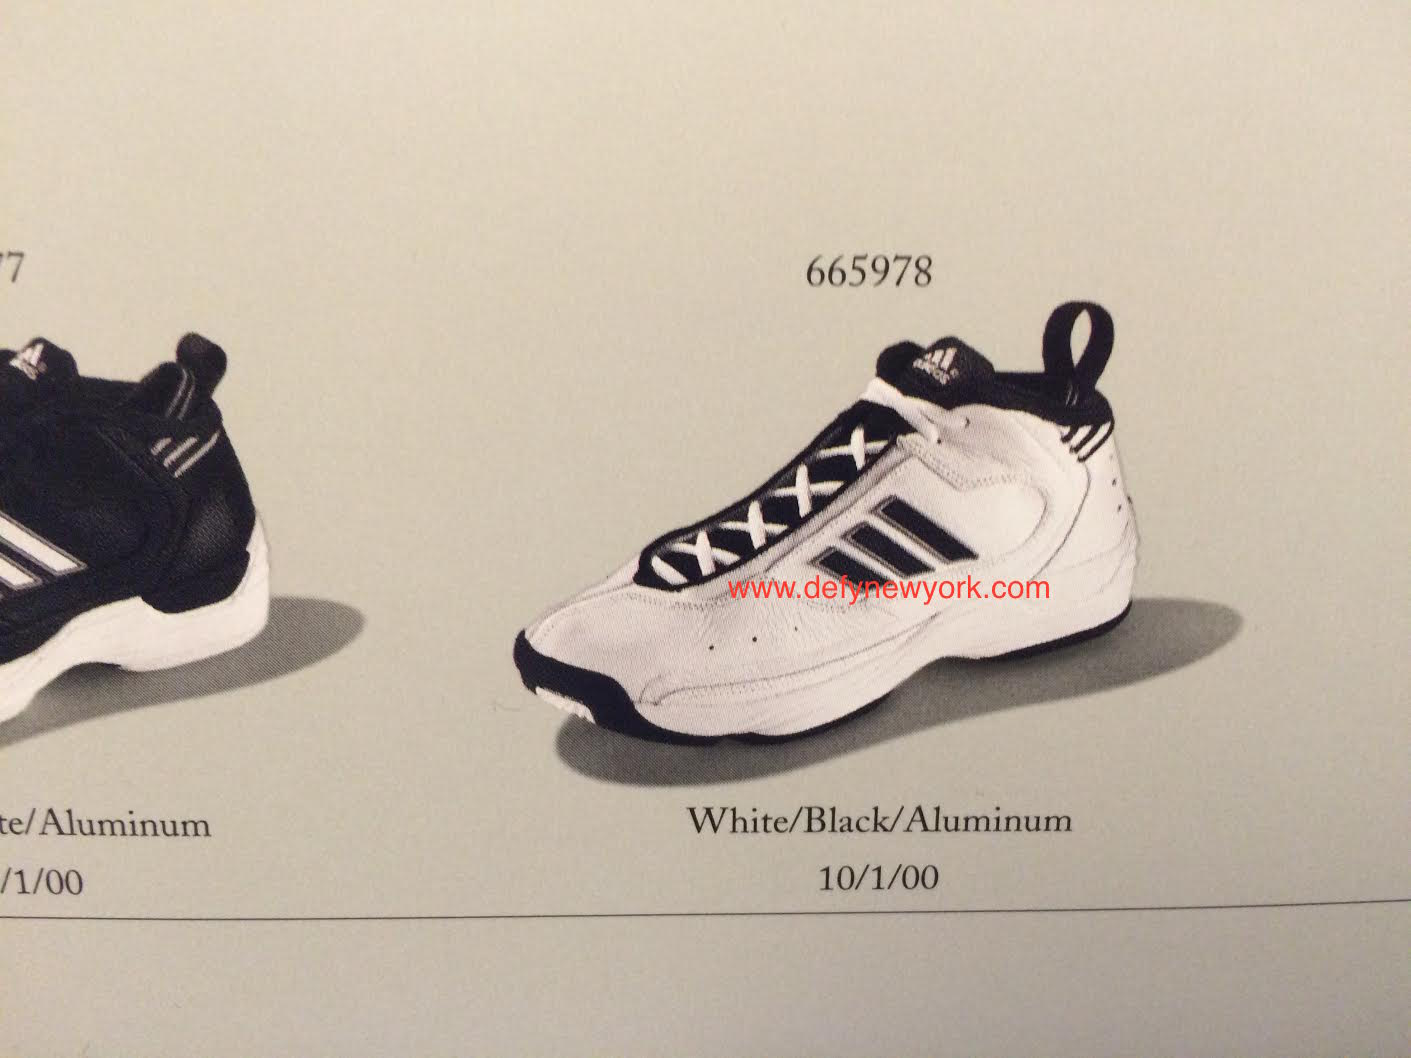 adidas basketball shoes 2000